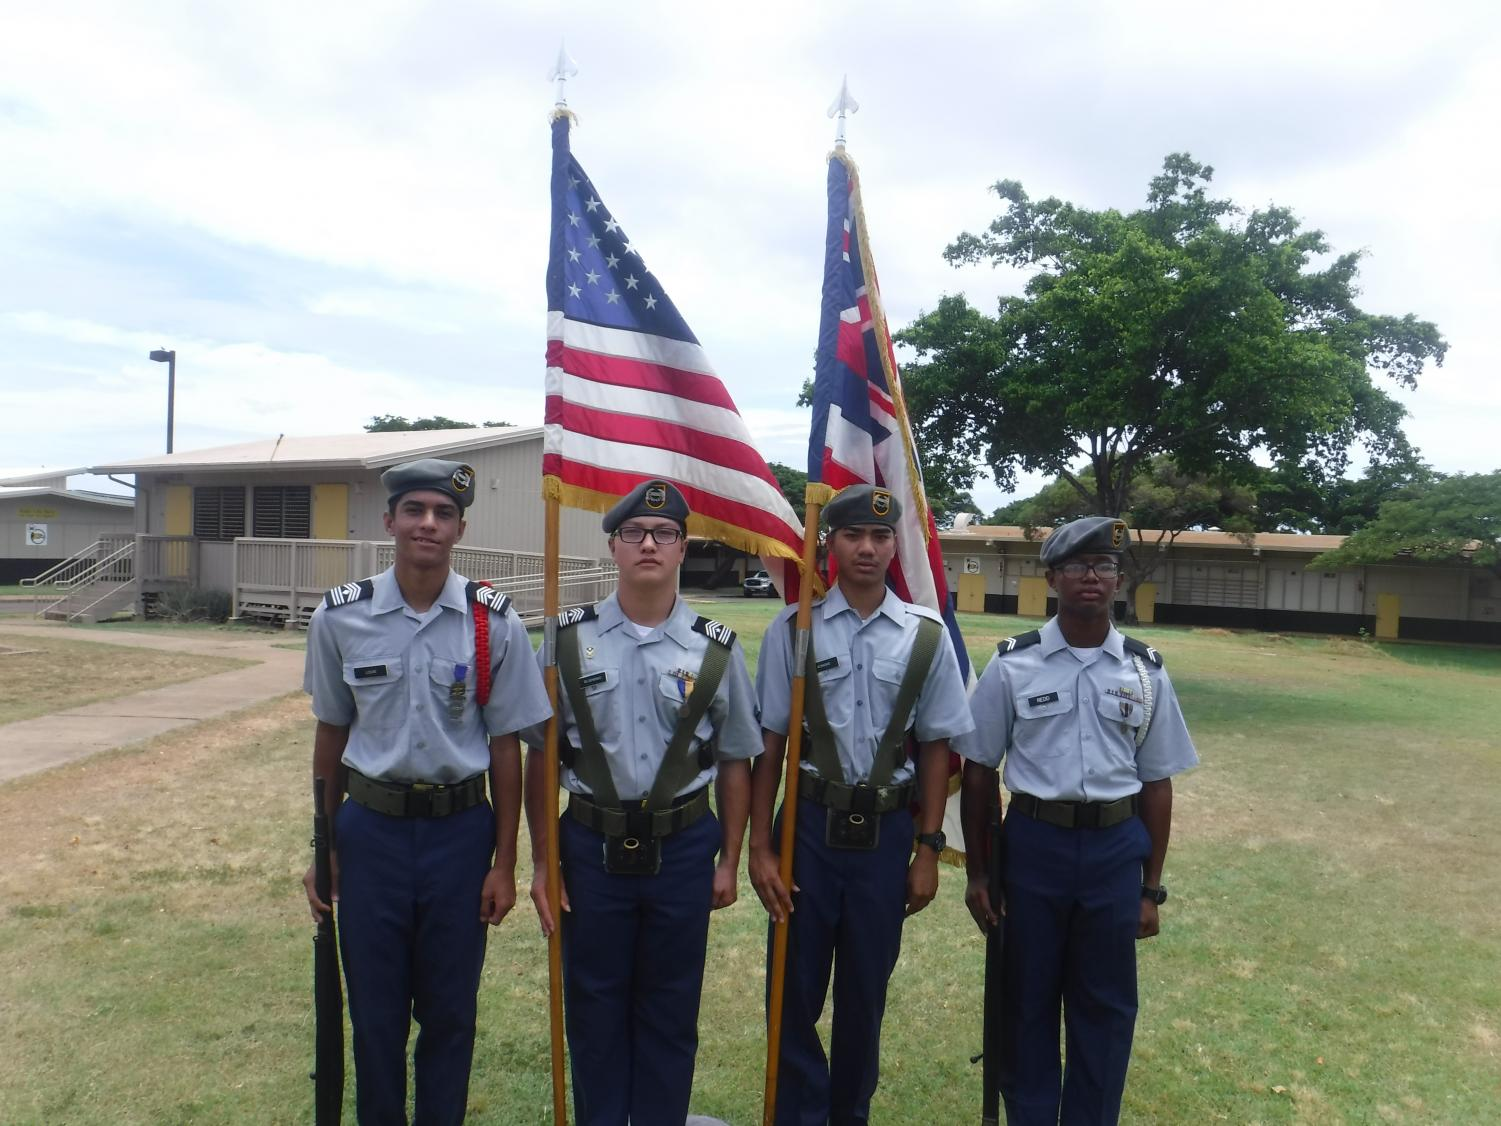 The NHIS JROTC Color Guard, comprised of students Djay Louis, Kainalu Glushenko, Andrew Koniske, and Devaughn Redd (pictured left to right).